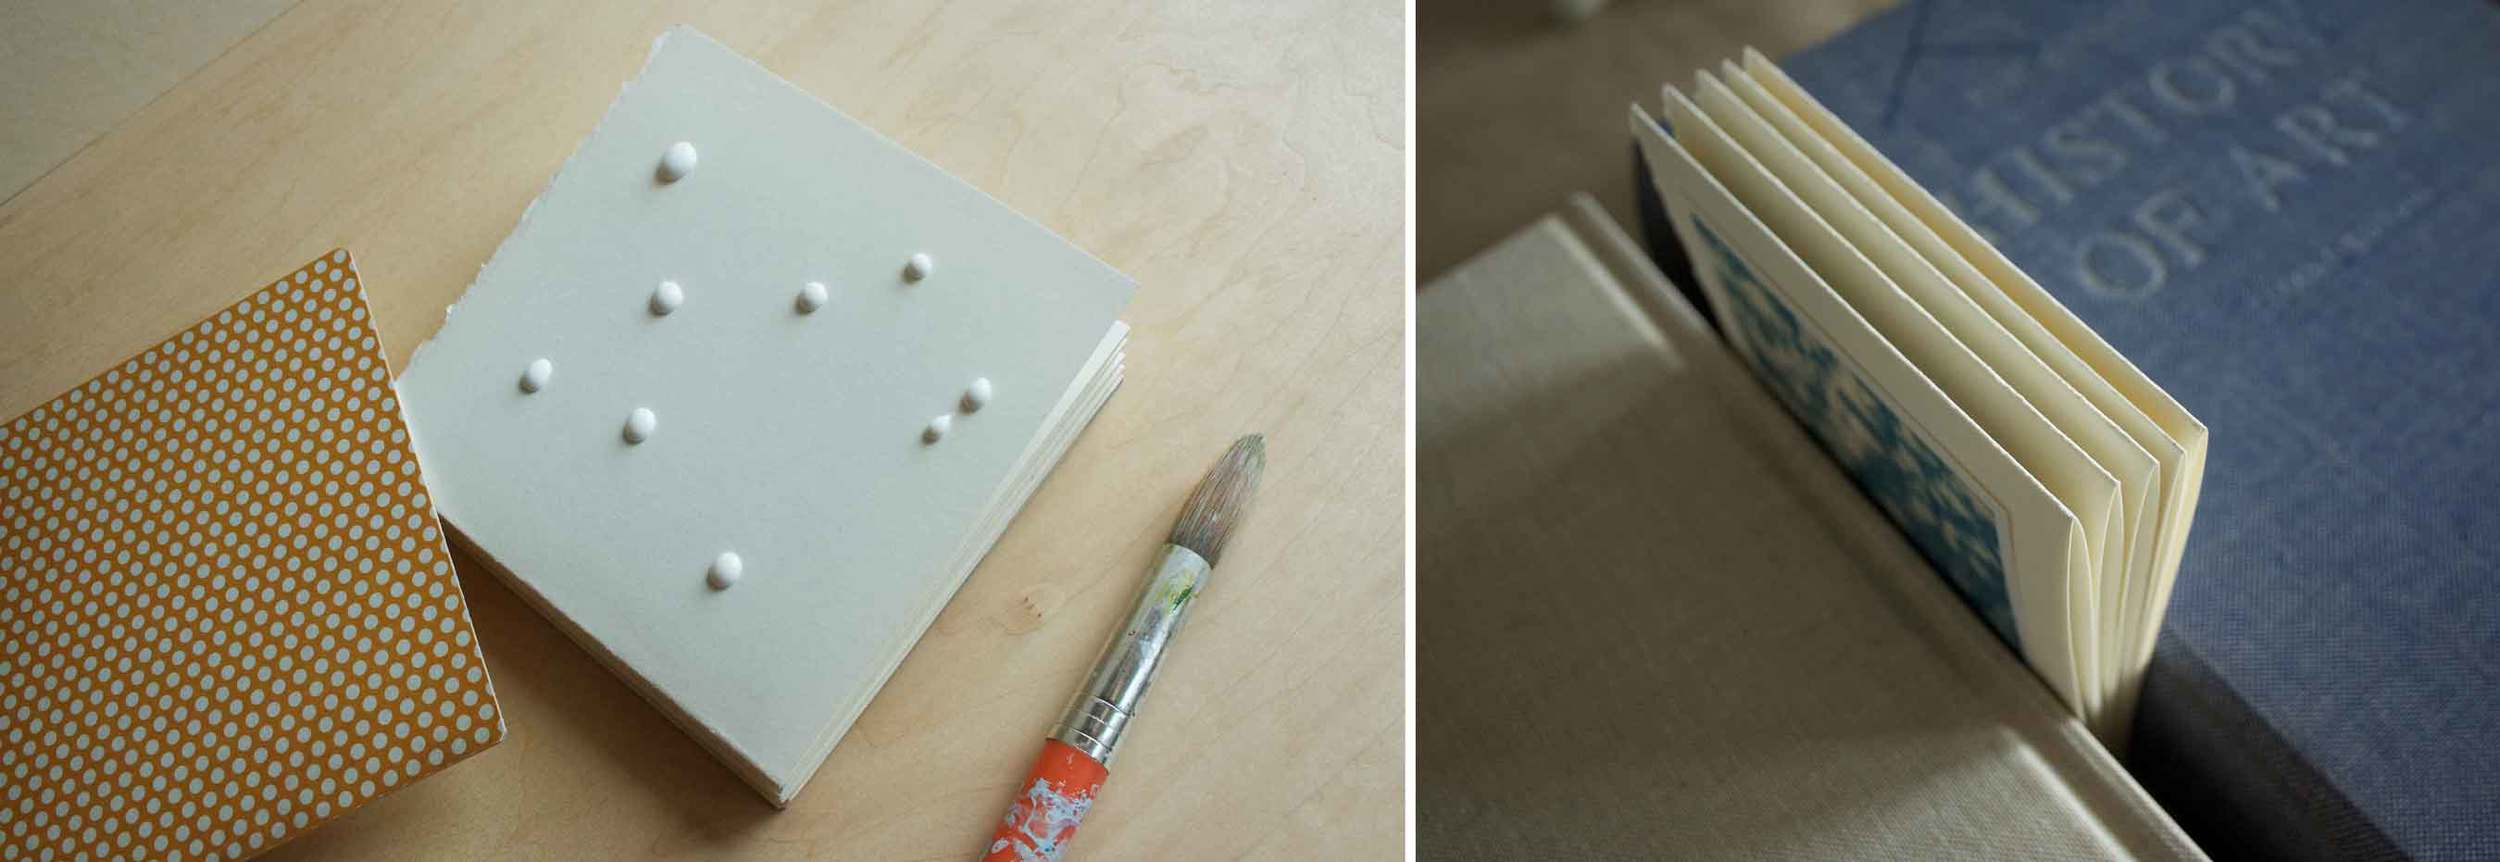 Gluing and pressing handmade accordion book, project by Thread & Whisk